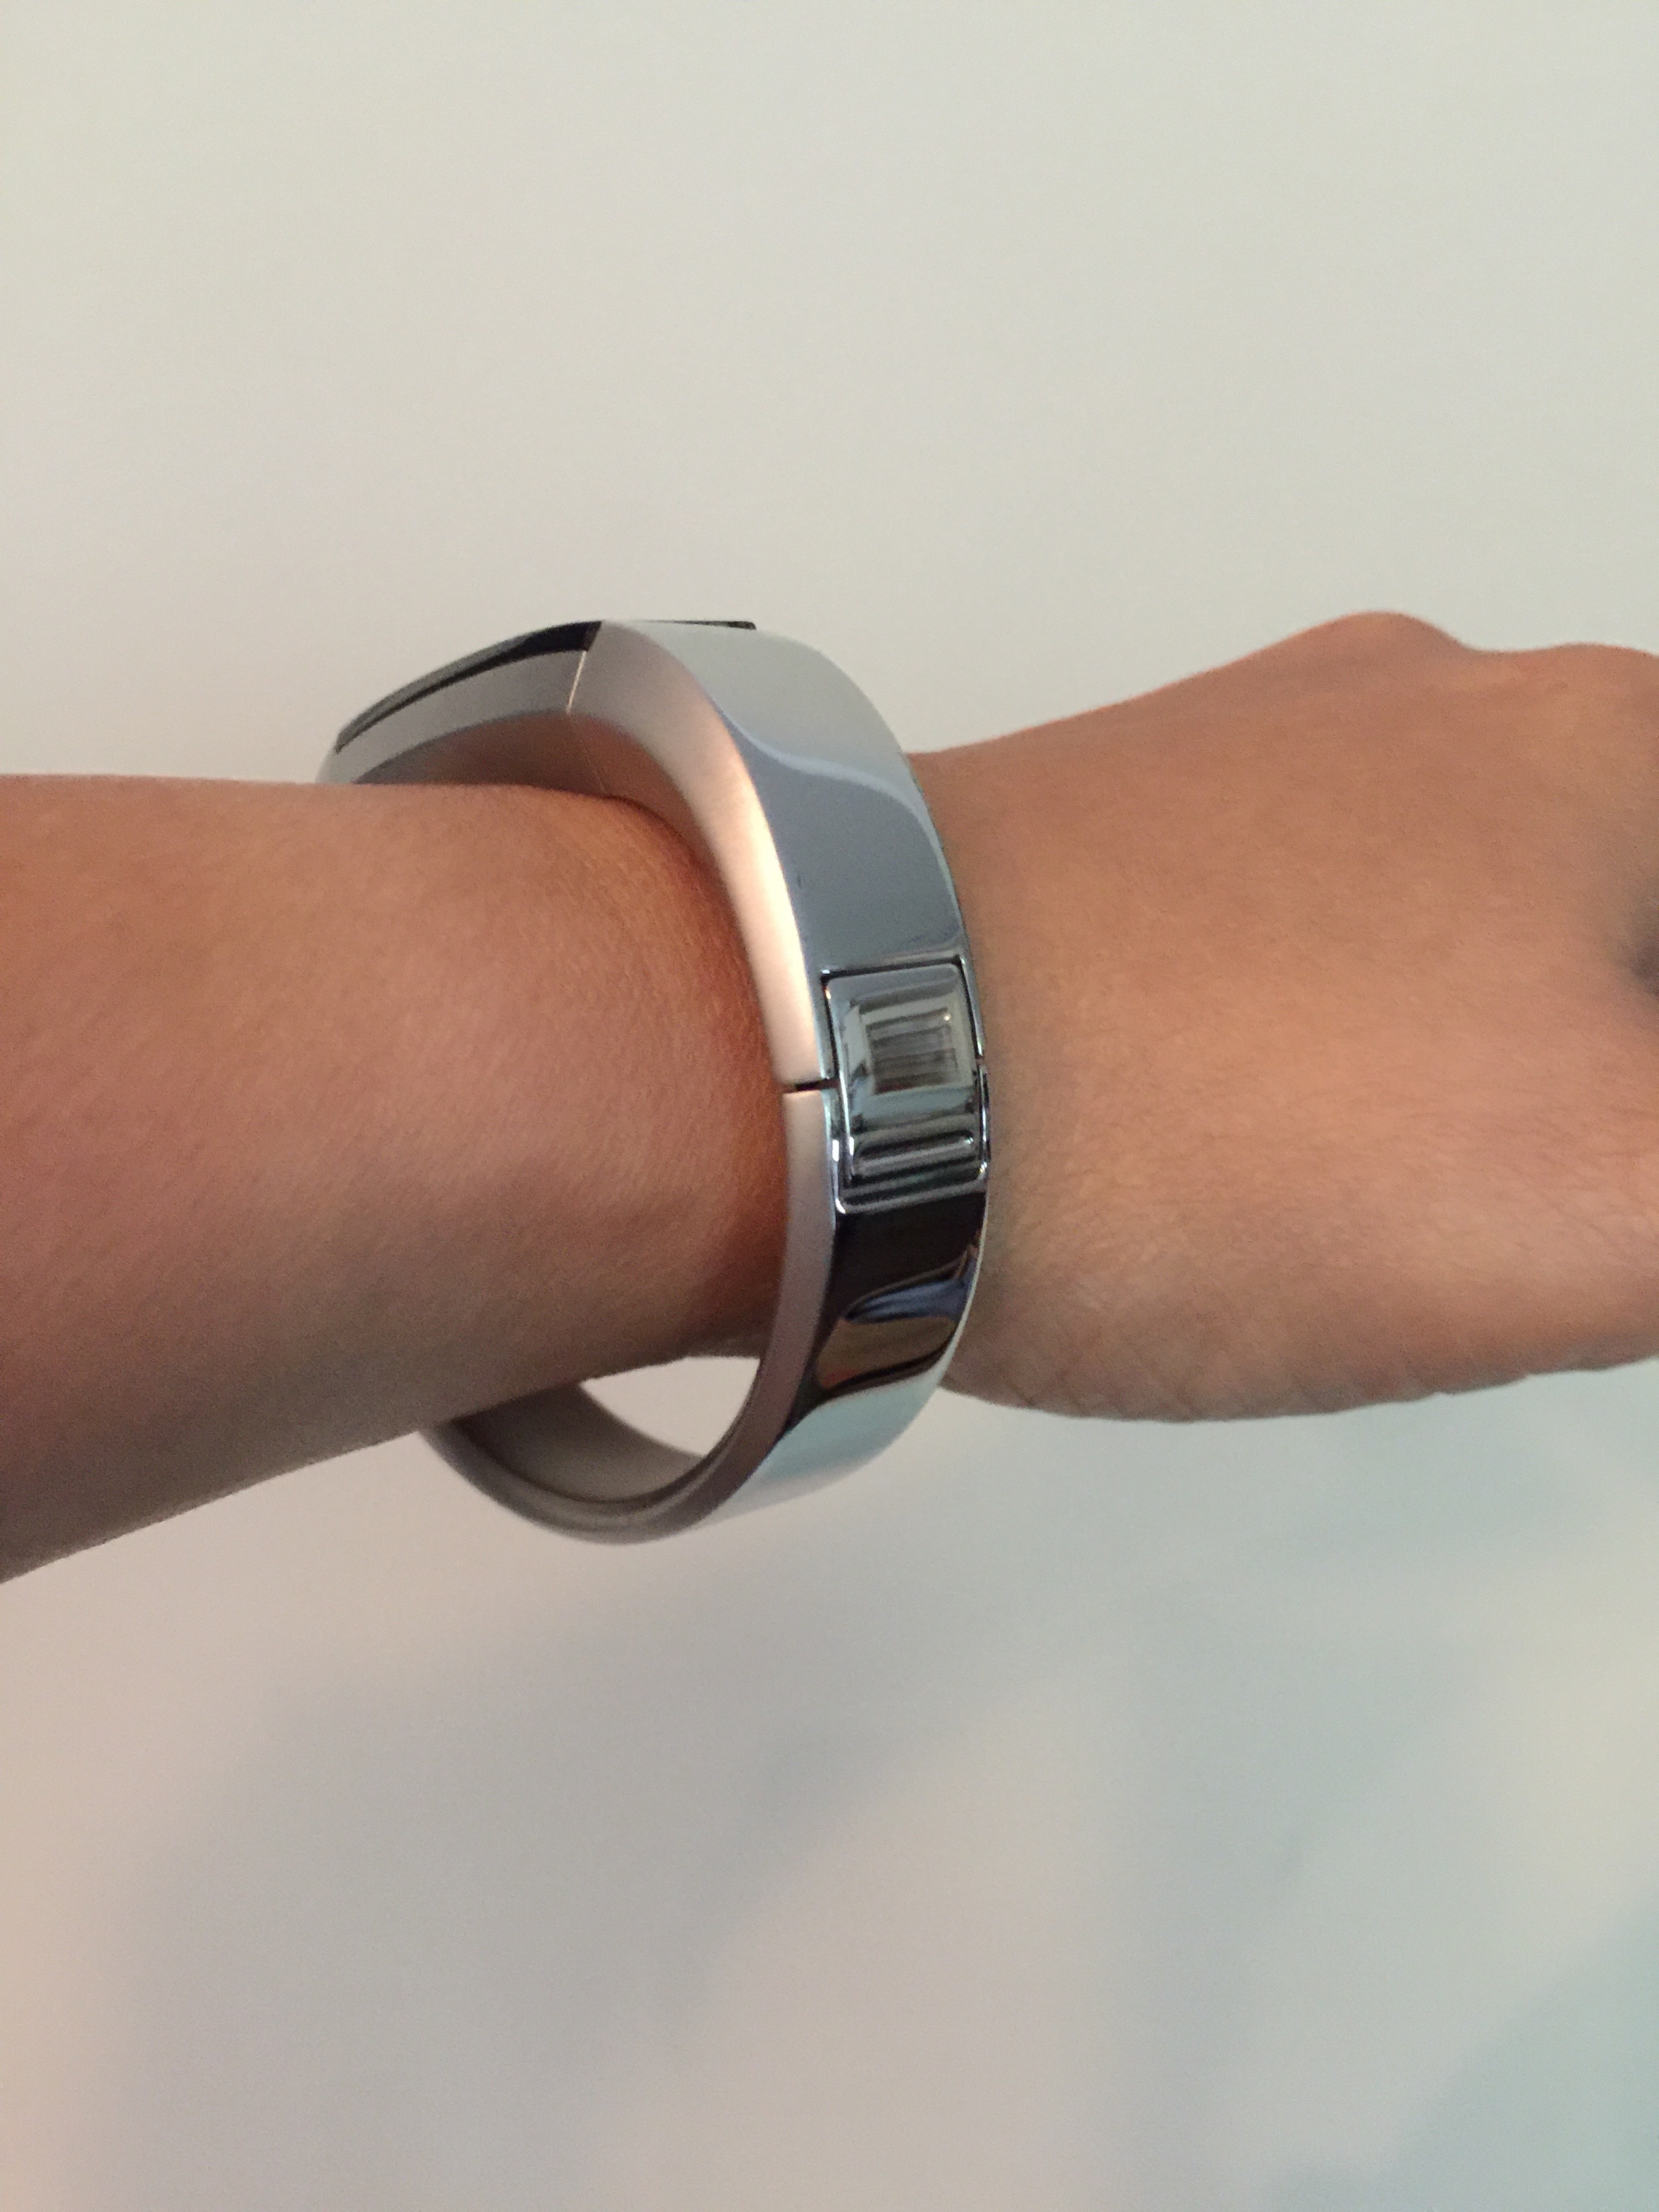 f32a800178166 Different sizing options for stainless steel band? - Fitbit Community